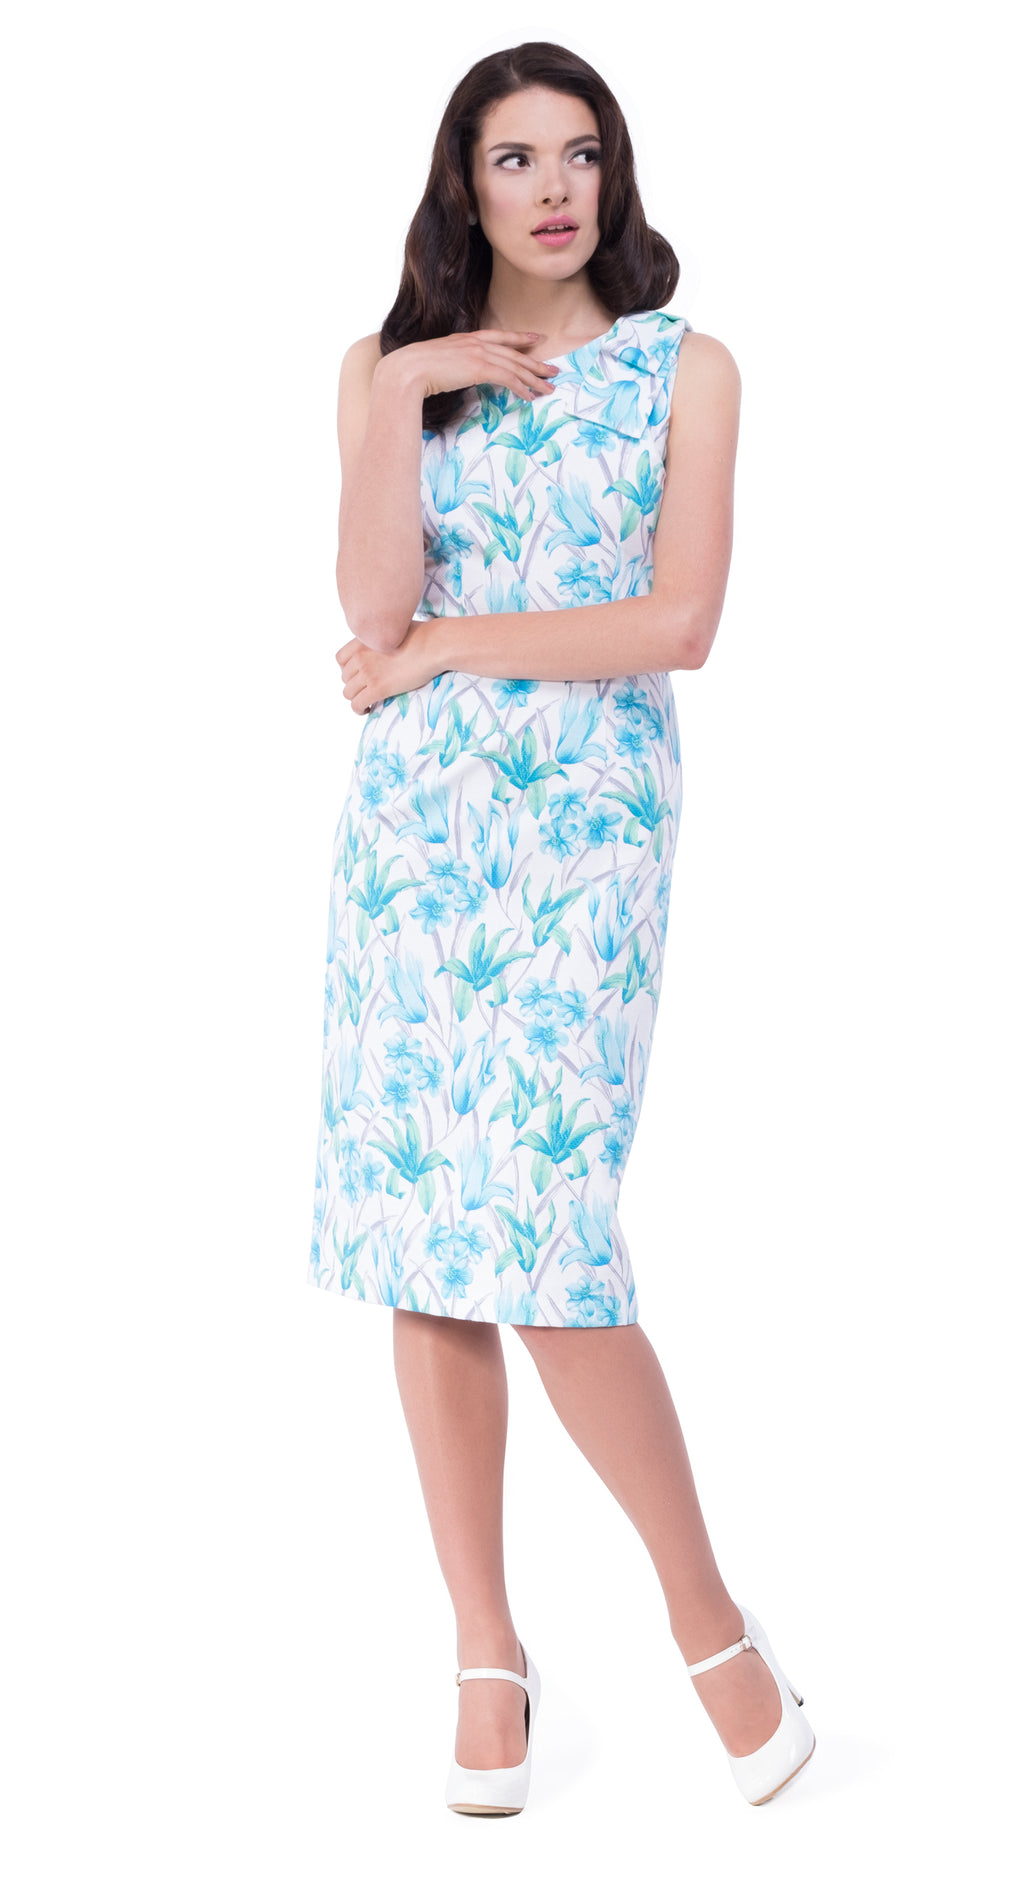 This fitted 50s style tiki floral pattern Spanish cotton blend dress has a large bow on one shoulder to compliment the simplicity of the flattering cut. A vintage style cocktail dress with an angled neckline; easy to dress up for more memorable events by way of heels and clutch. Finished with a white faux leather belt and available in as shown turquoise, or pink.